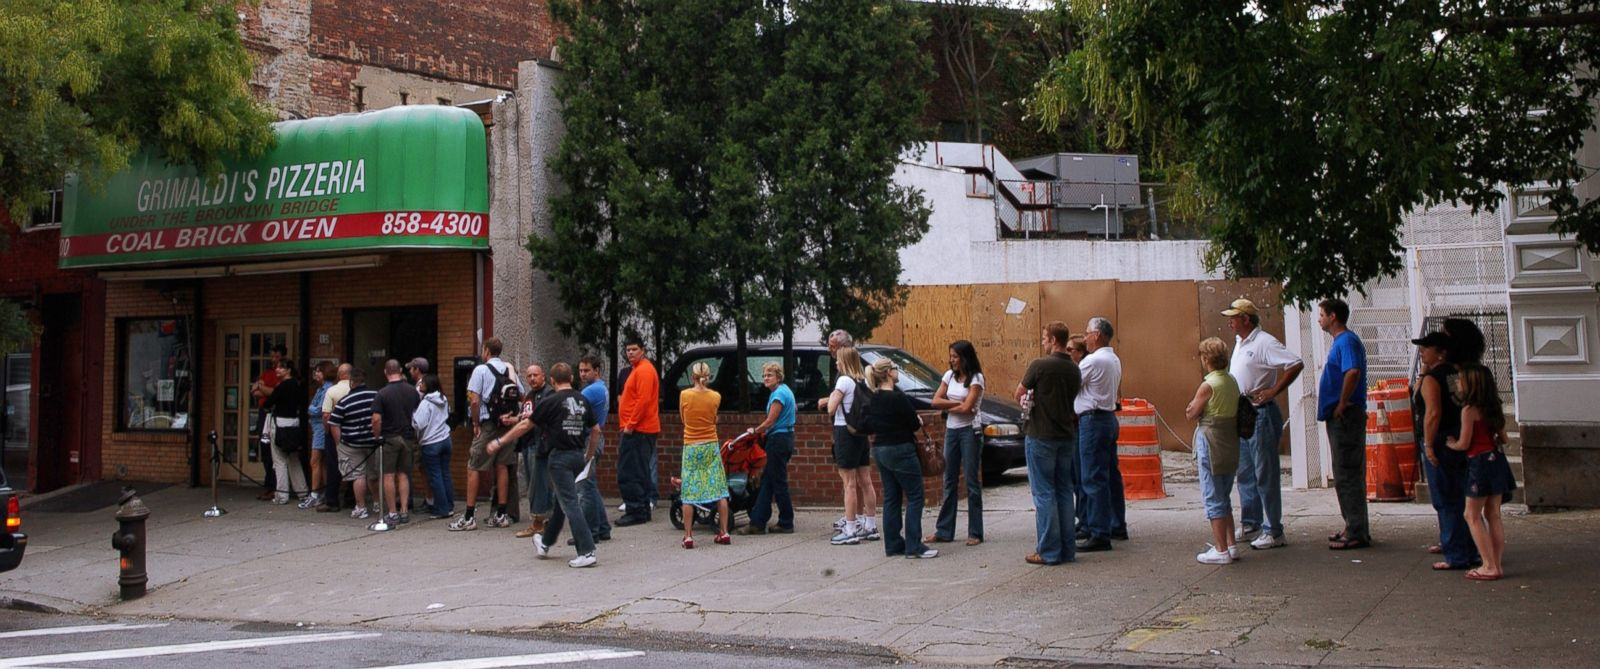 PHOTO: CharityWait lets you skip the line at restaurants while donating to charity at the same time.